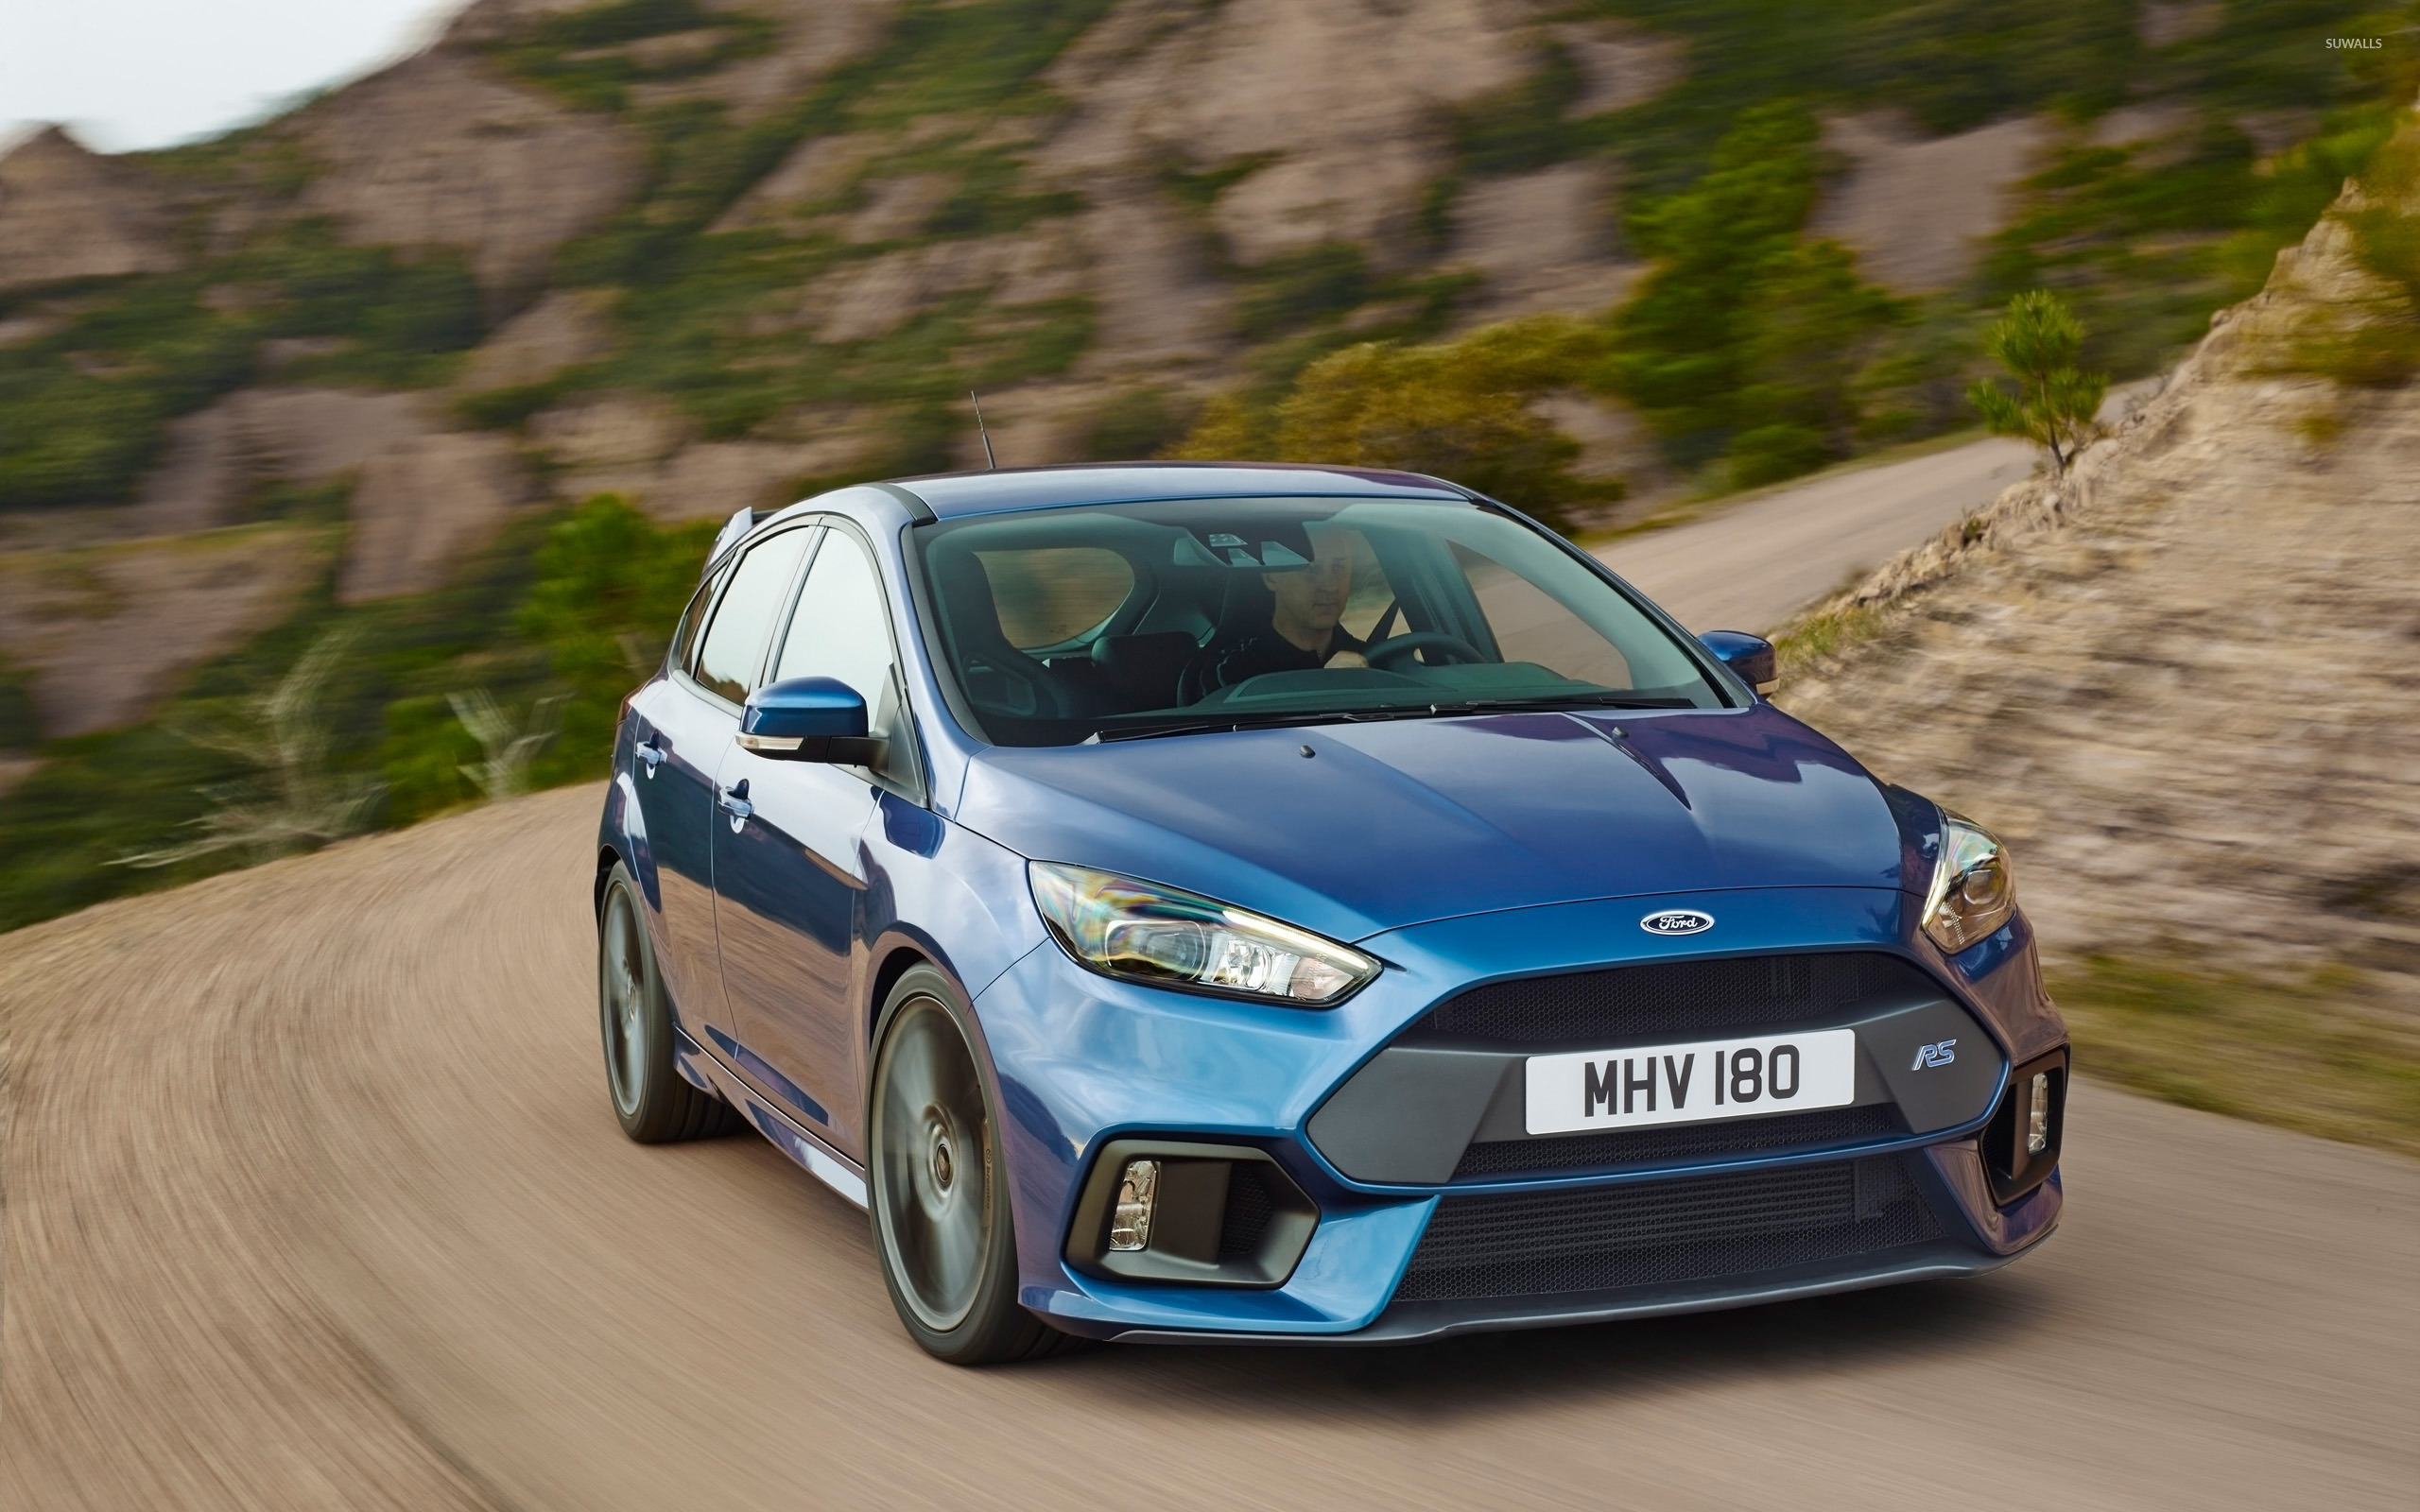 2015 Ford Focus Rs Front View Wallpaper Car Wallpapers